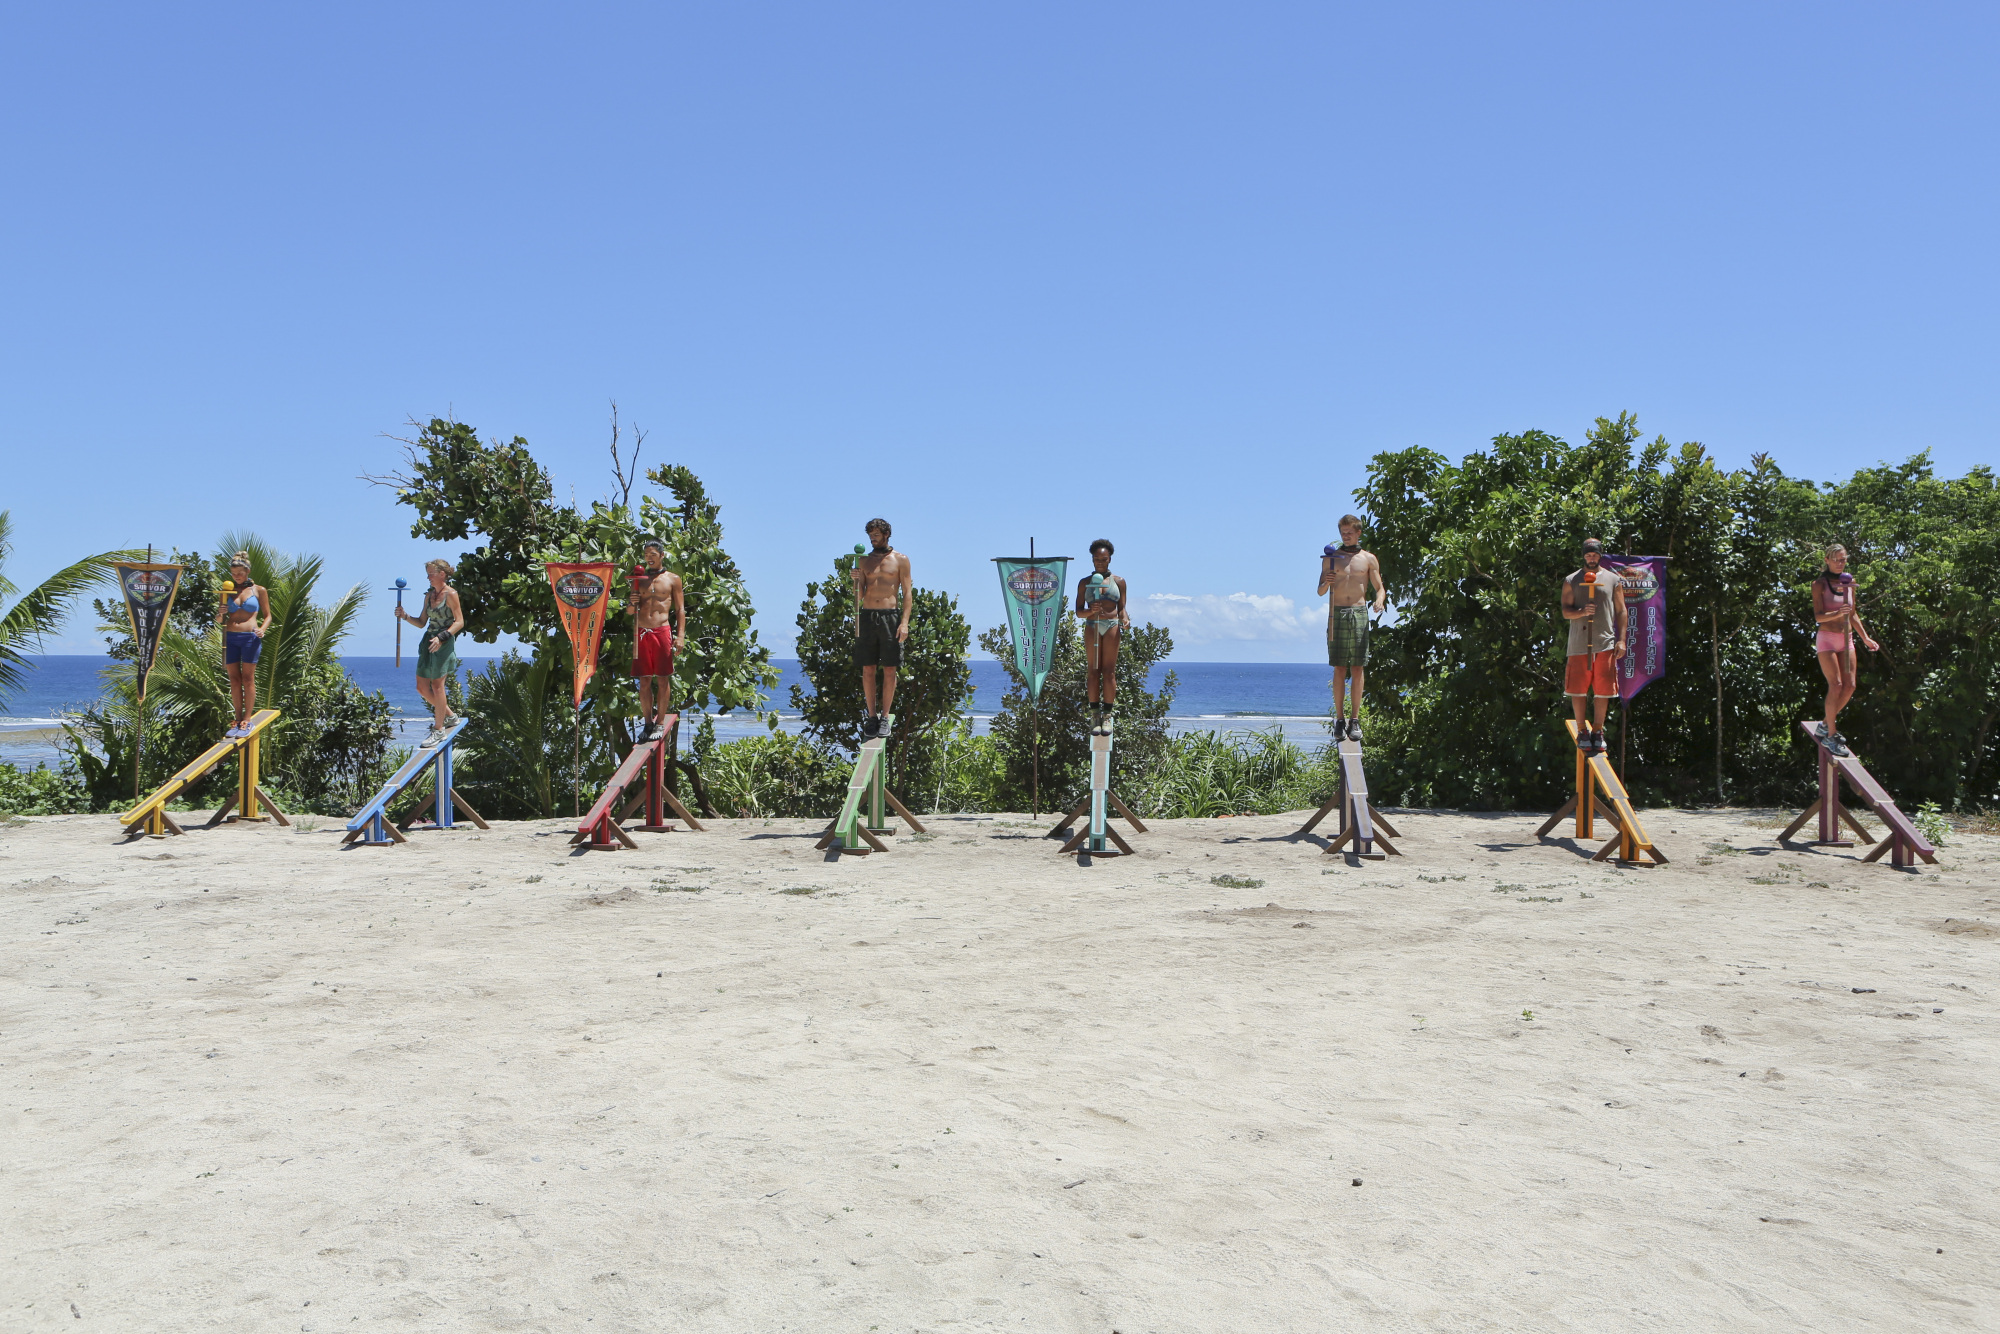 Immunity challenge competition in Season 28 Episode 9